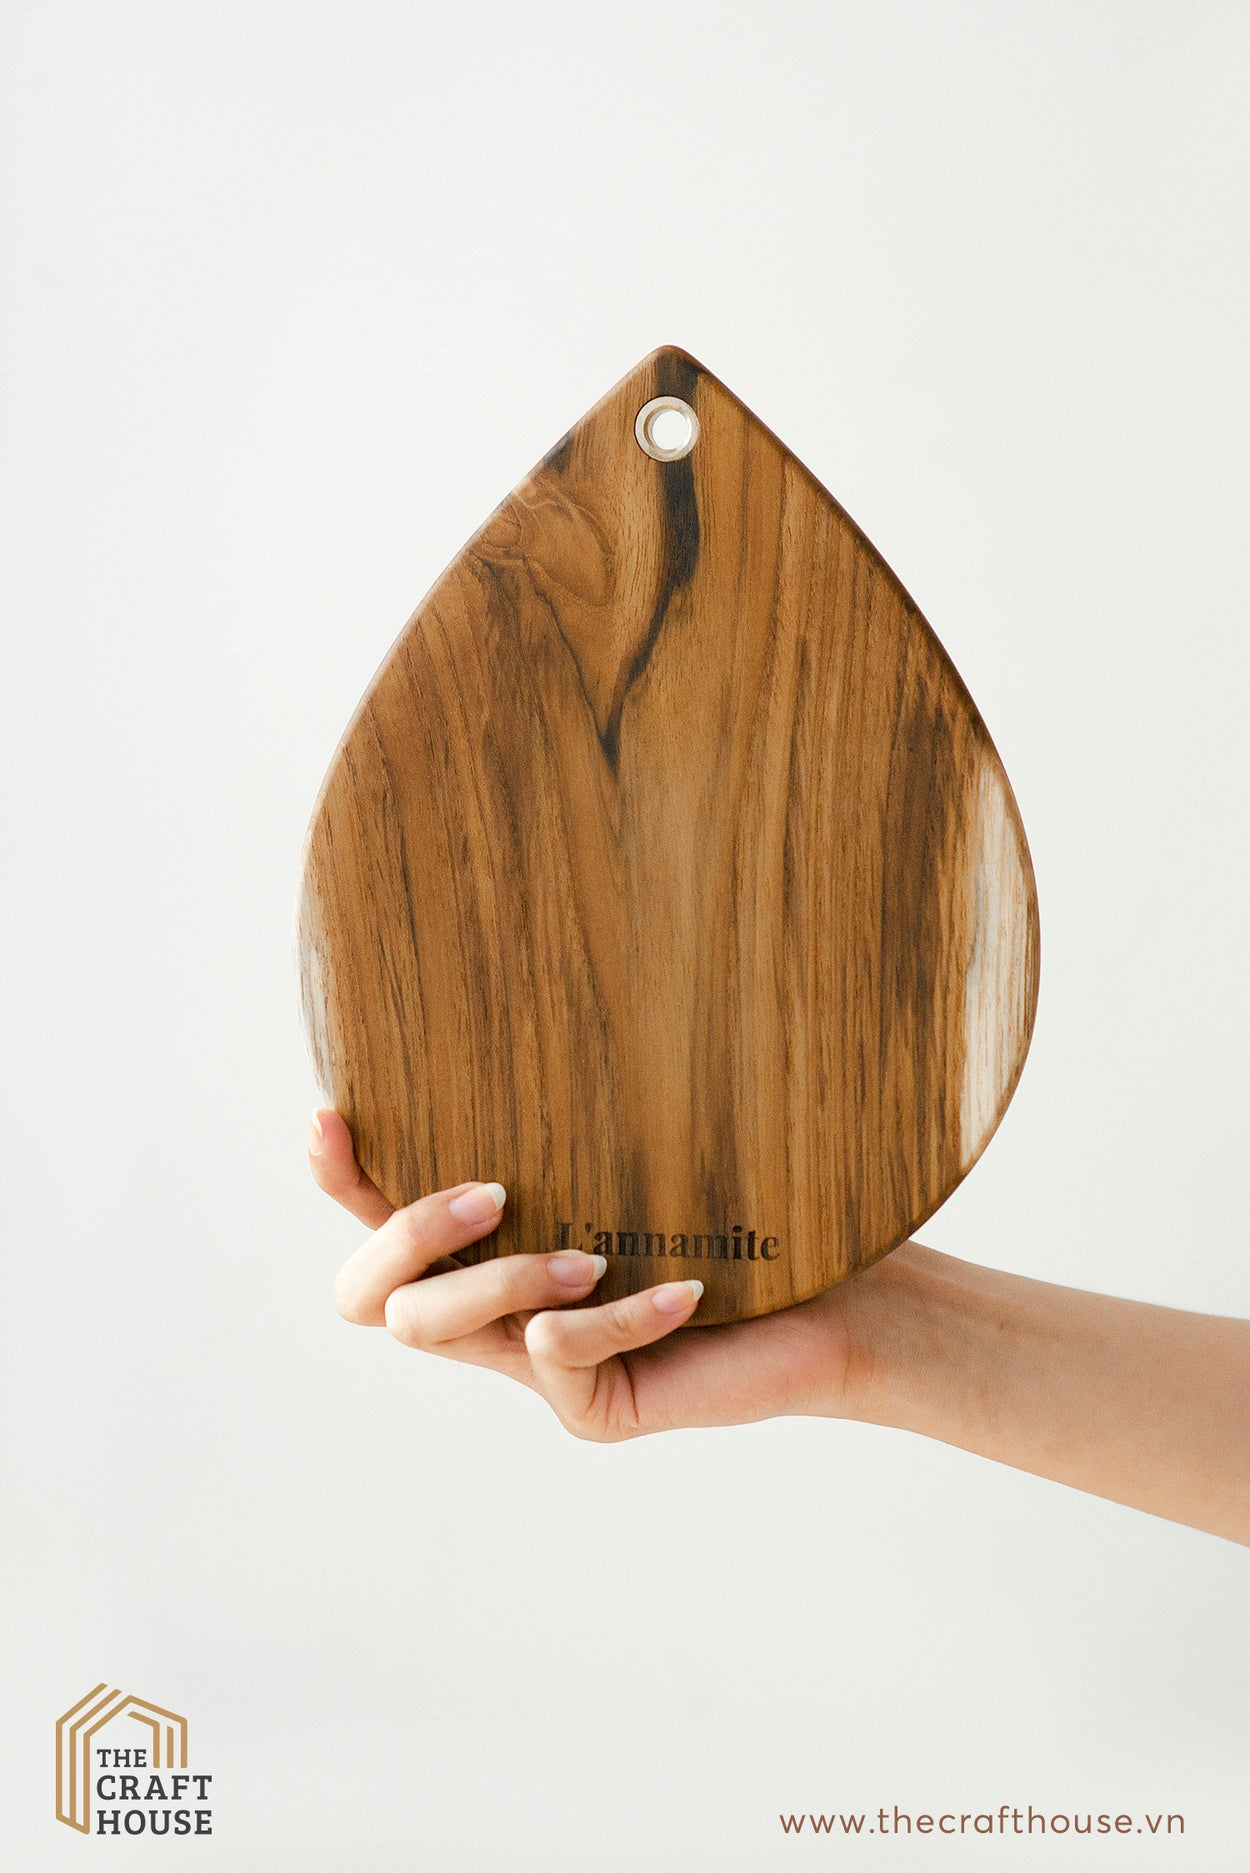 L'annamite - Wooden chopping board water drop